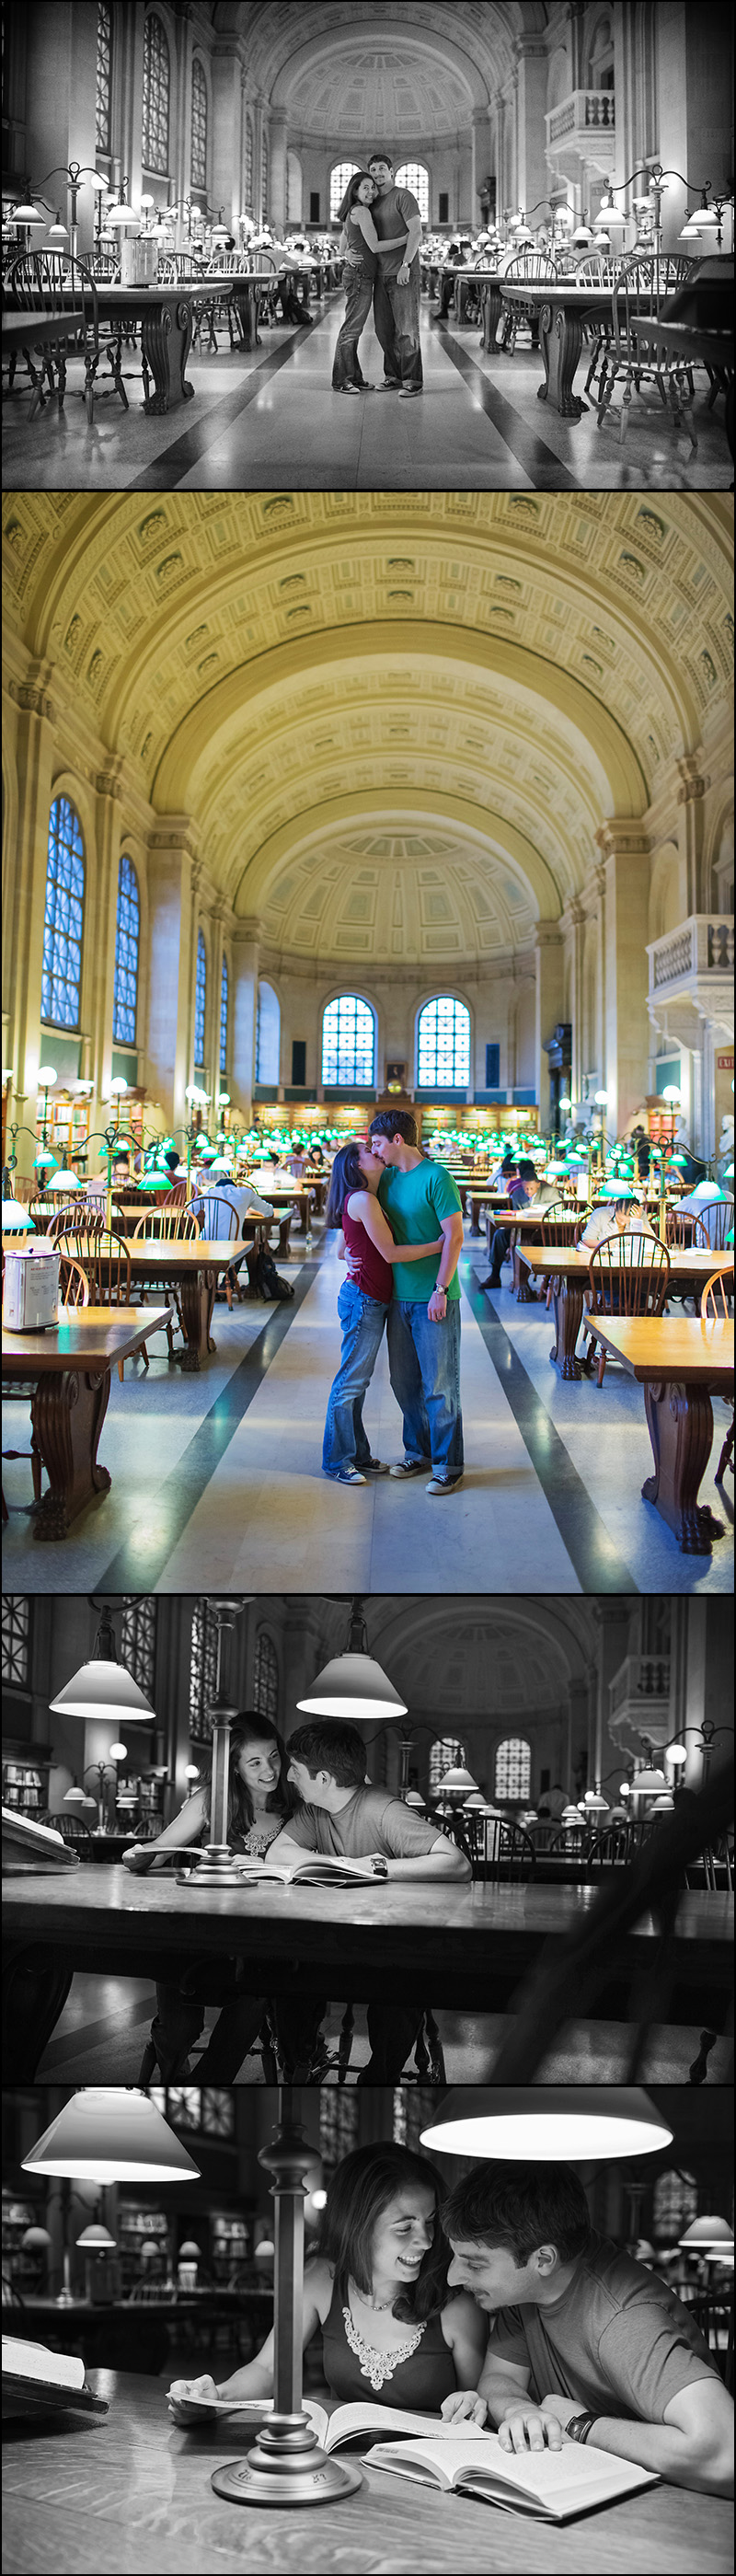 ENGAGEMENT PHOTOGRAPHY AT THE BOSTON PUBLIC LIBRARY